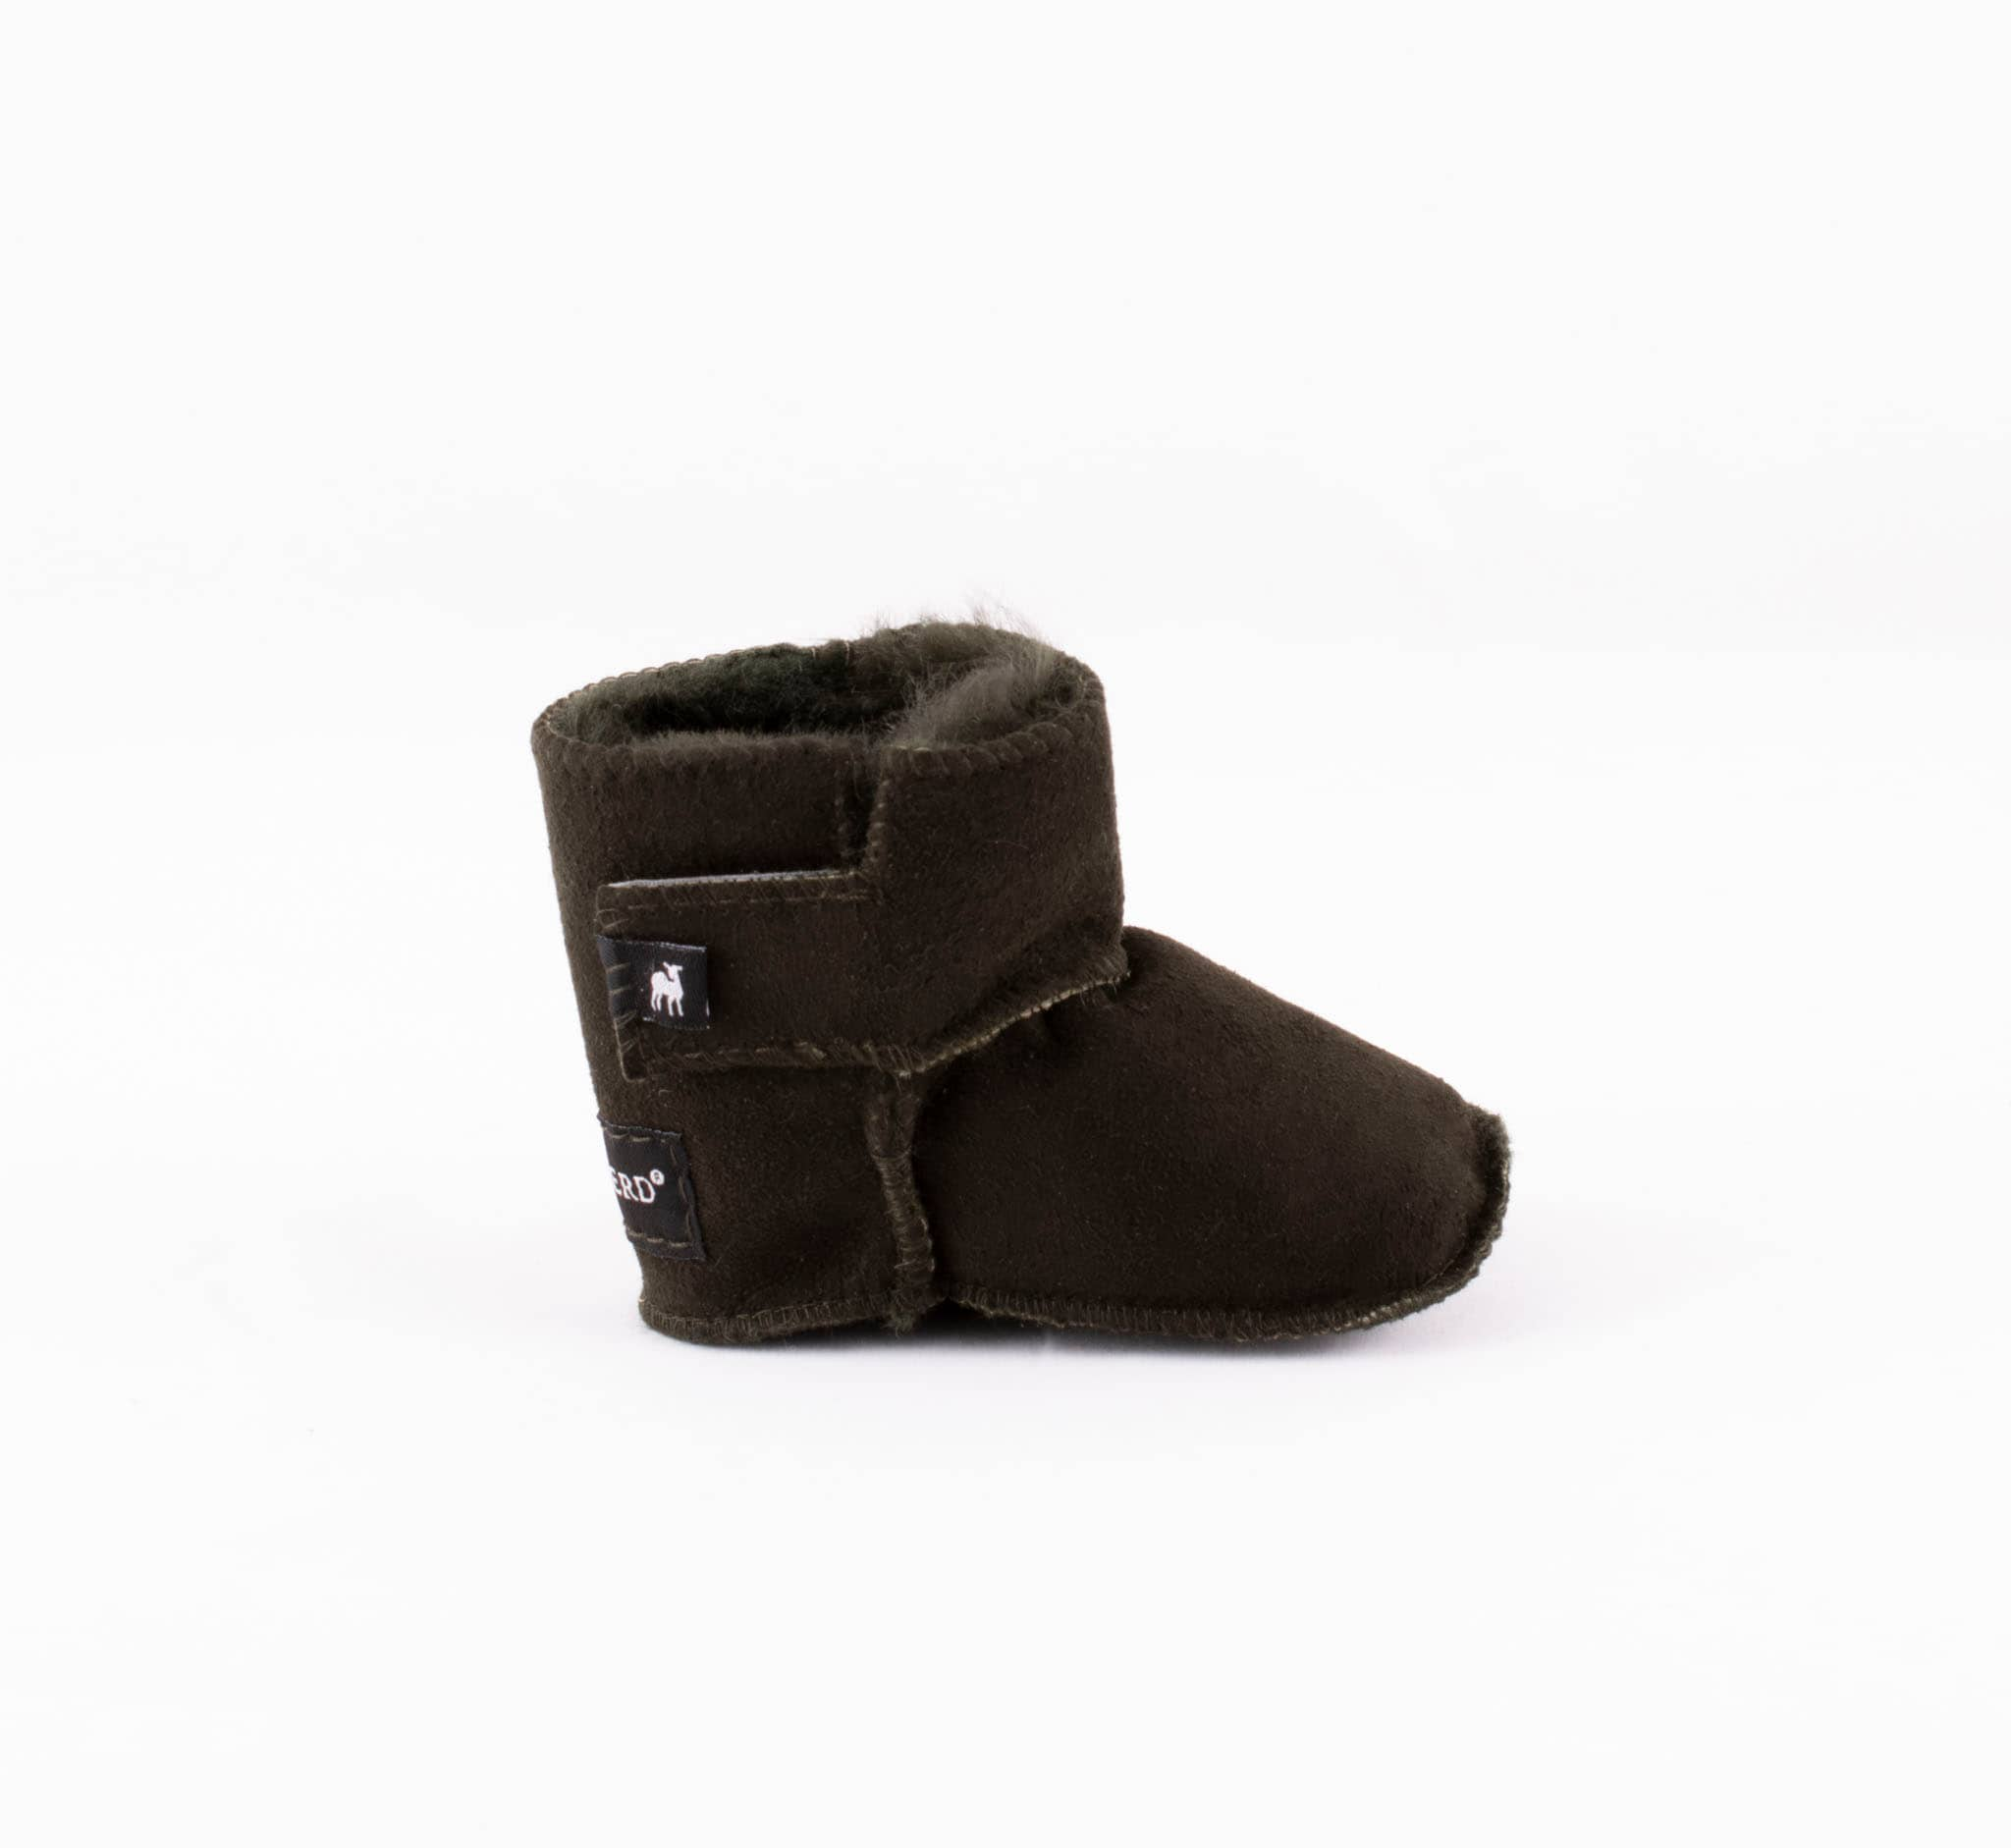 Borås baby slippers Olive